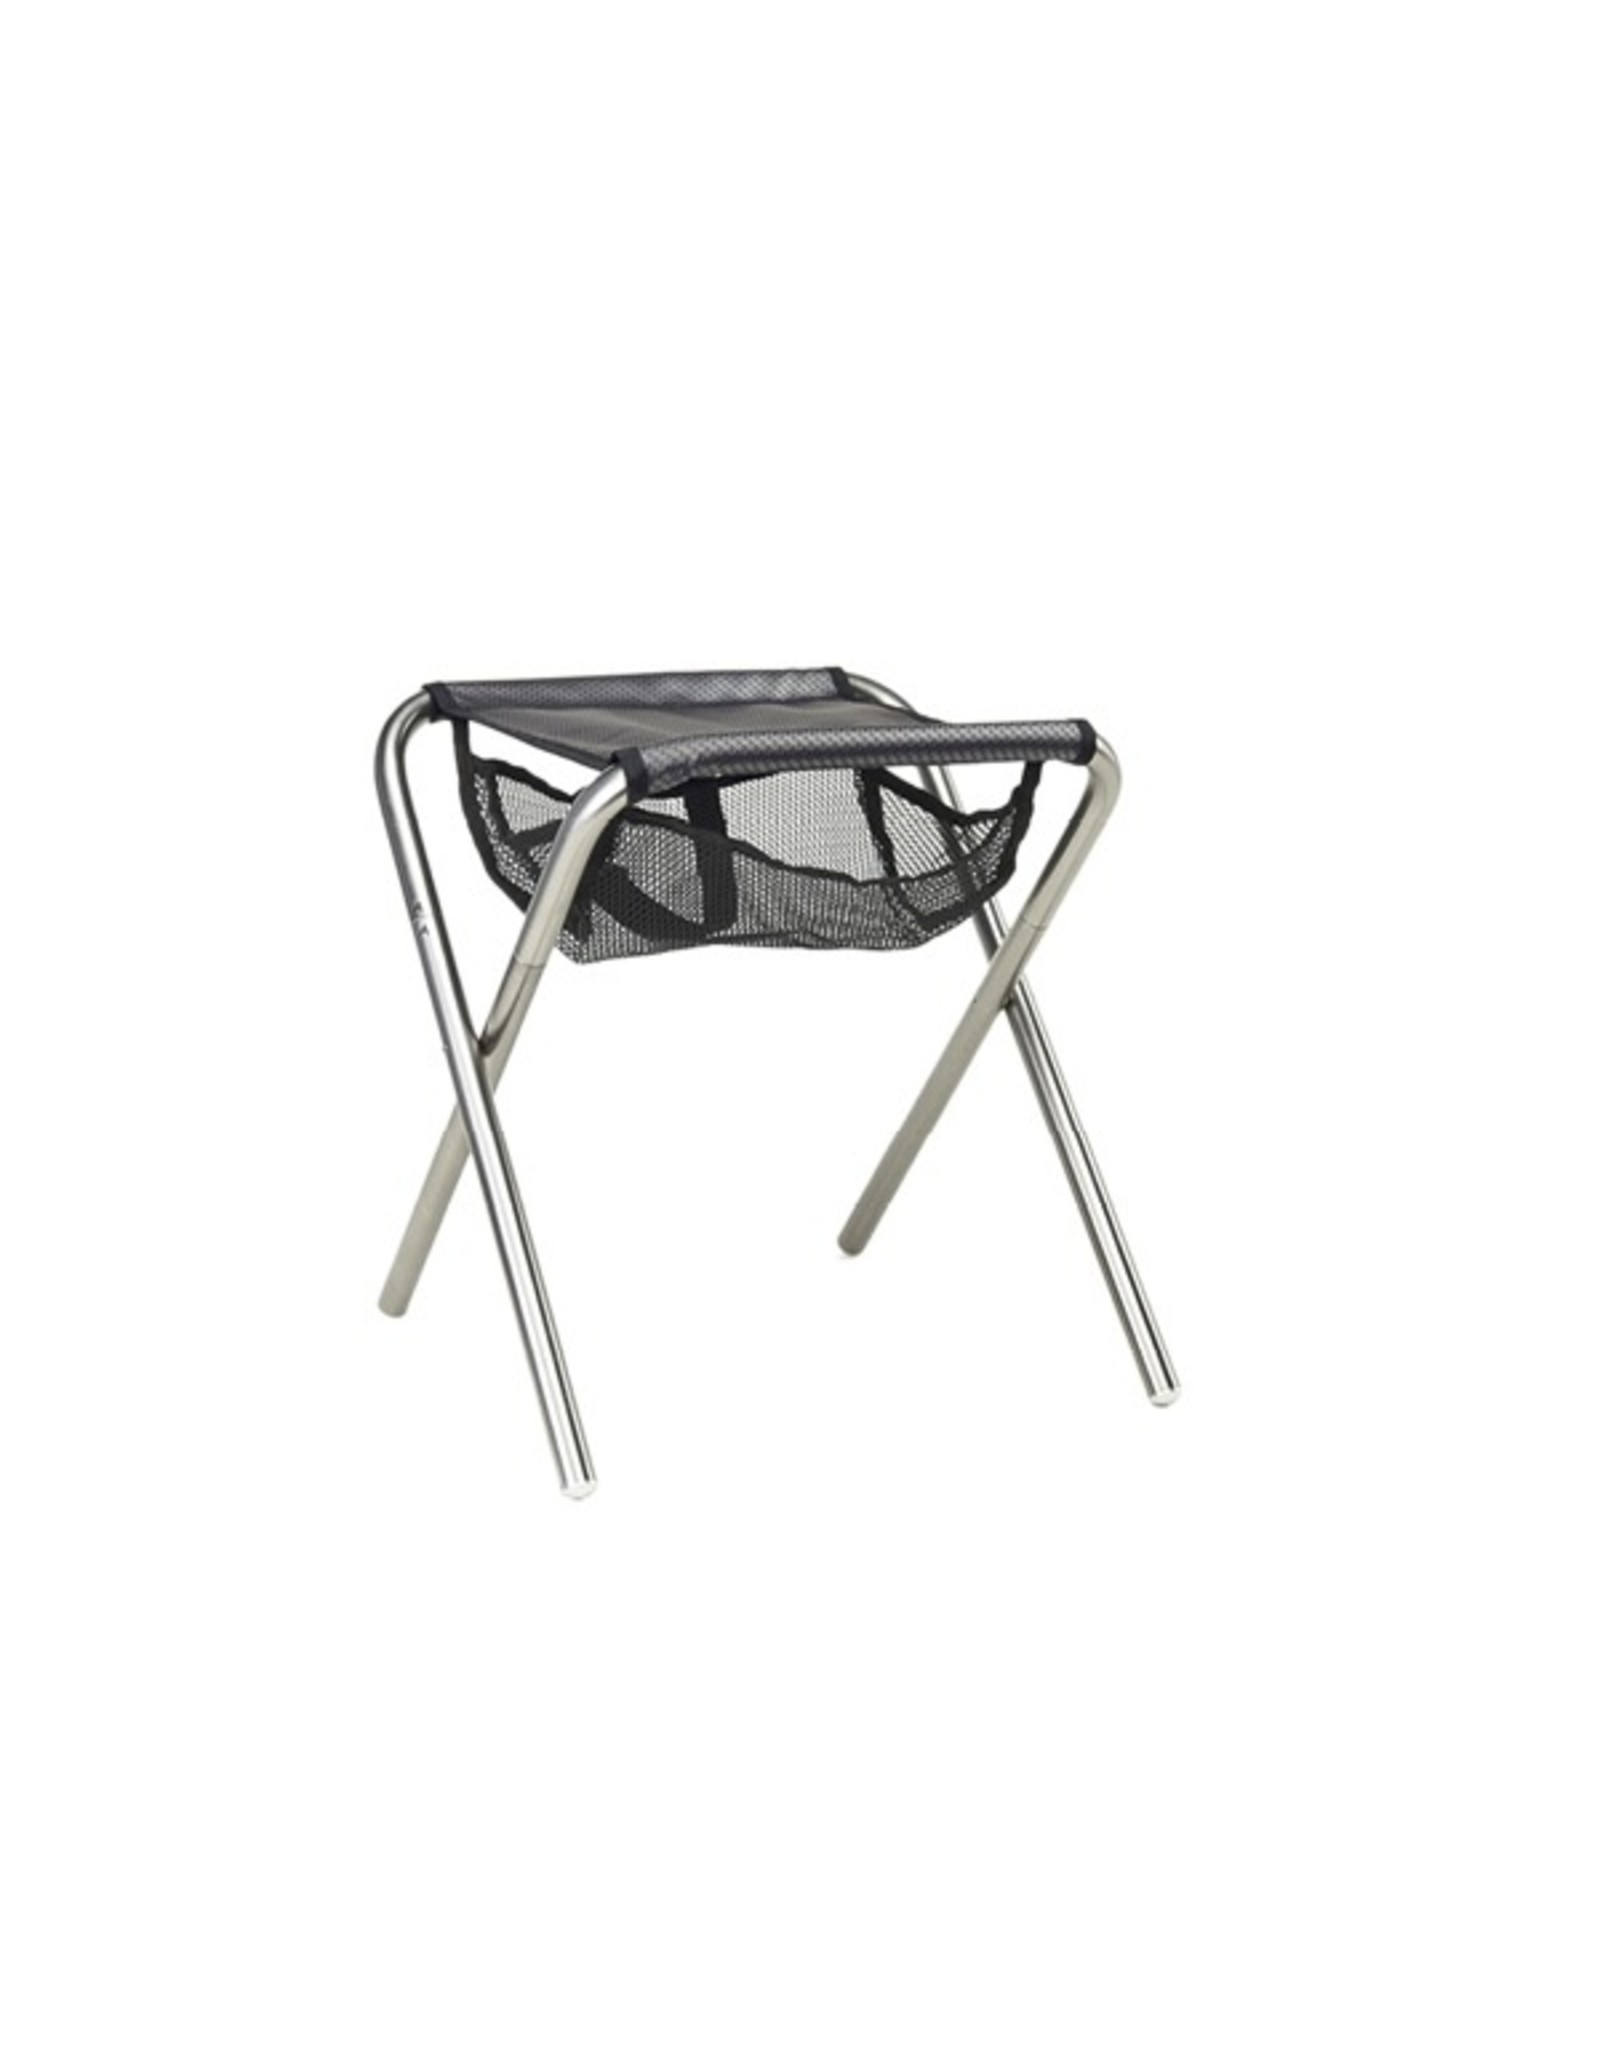 GRAND TRUNK GRAND TRUNK COLLAPSIBLE CAMP STOOL